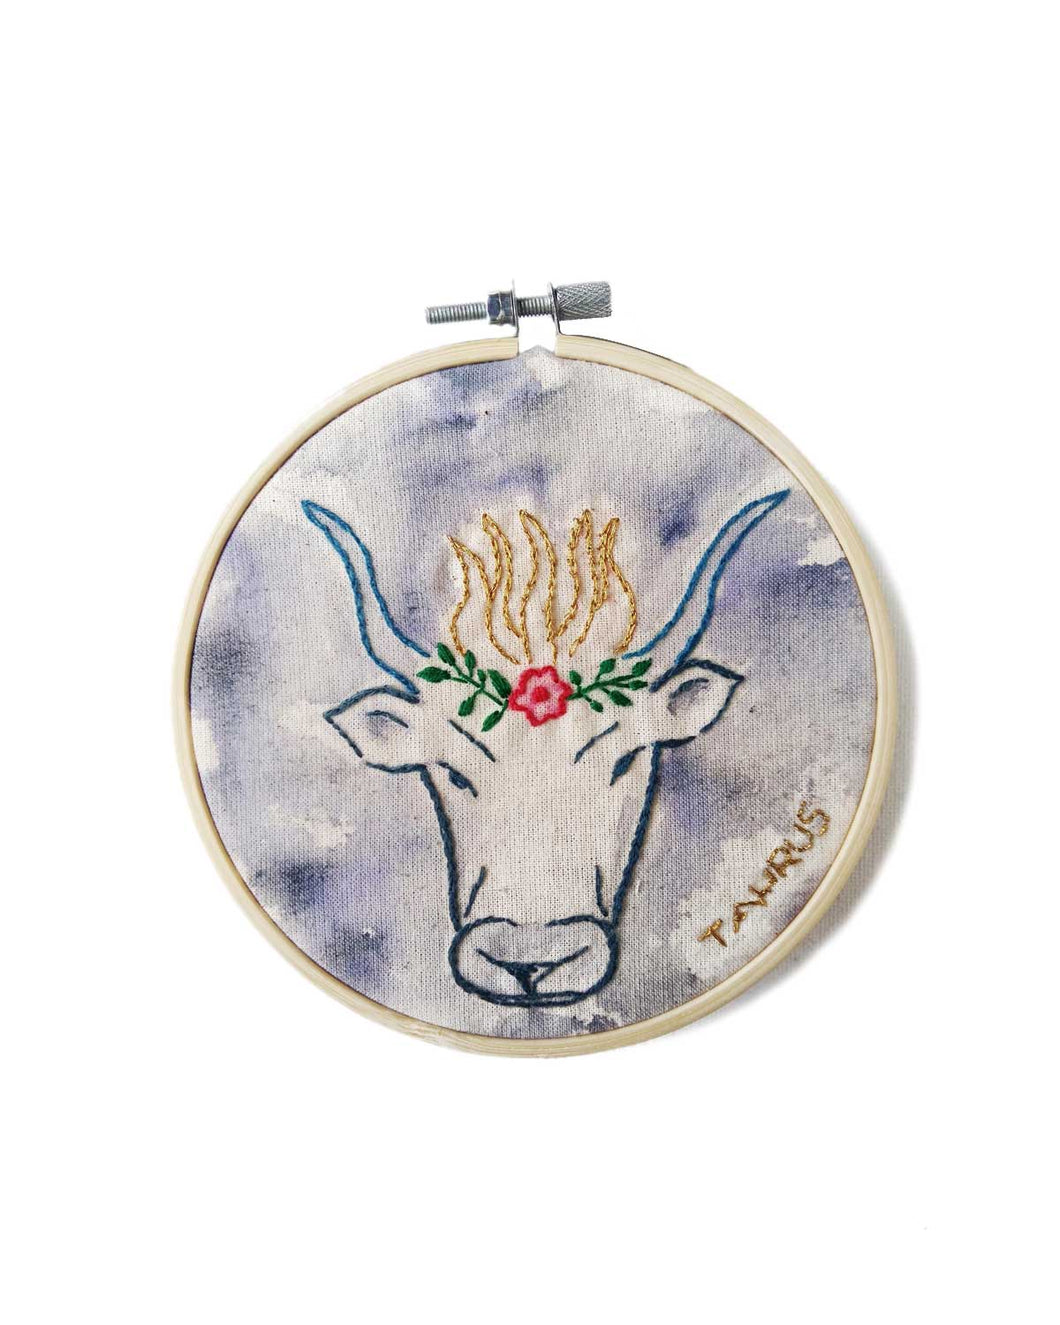 Taurus Zodiac Embroidery pattern design